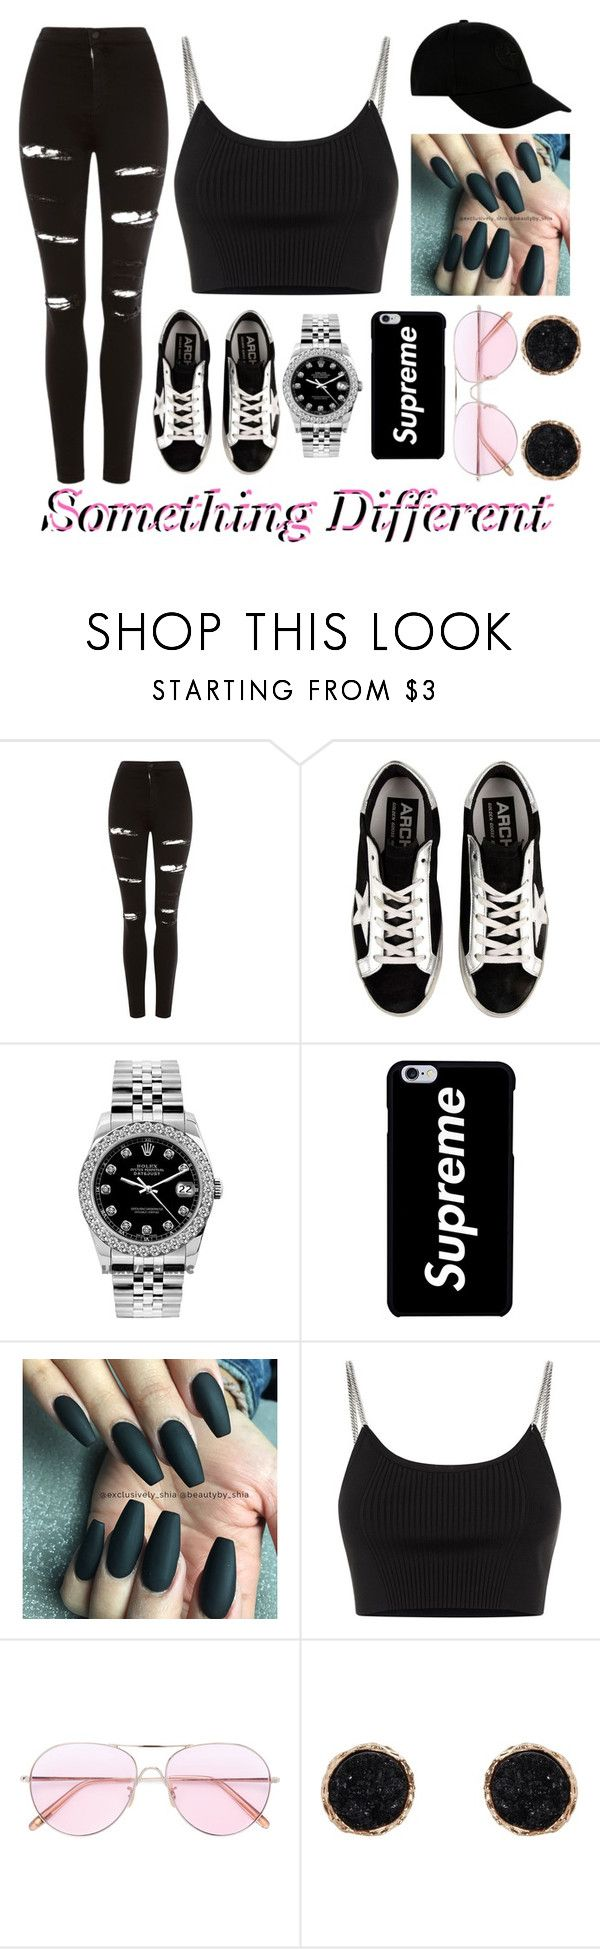 """""""Something Different❤"""" by emmamarais ❤ liked on Polyvore featuring Topshop, Golden Goose, Rolex, Alexander Wang, Oliver Peoples, Humble Chic and STONE ISLAND"""